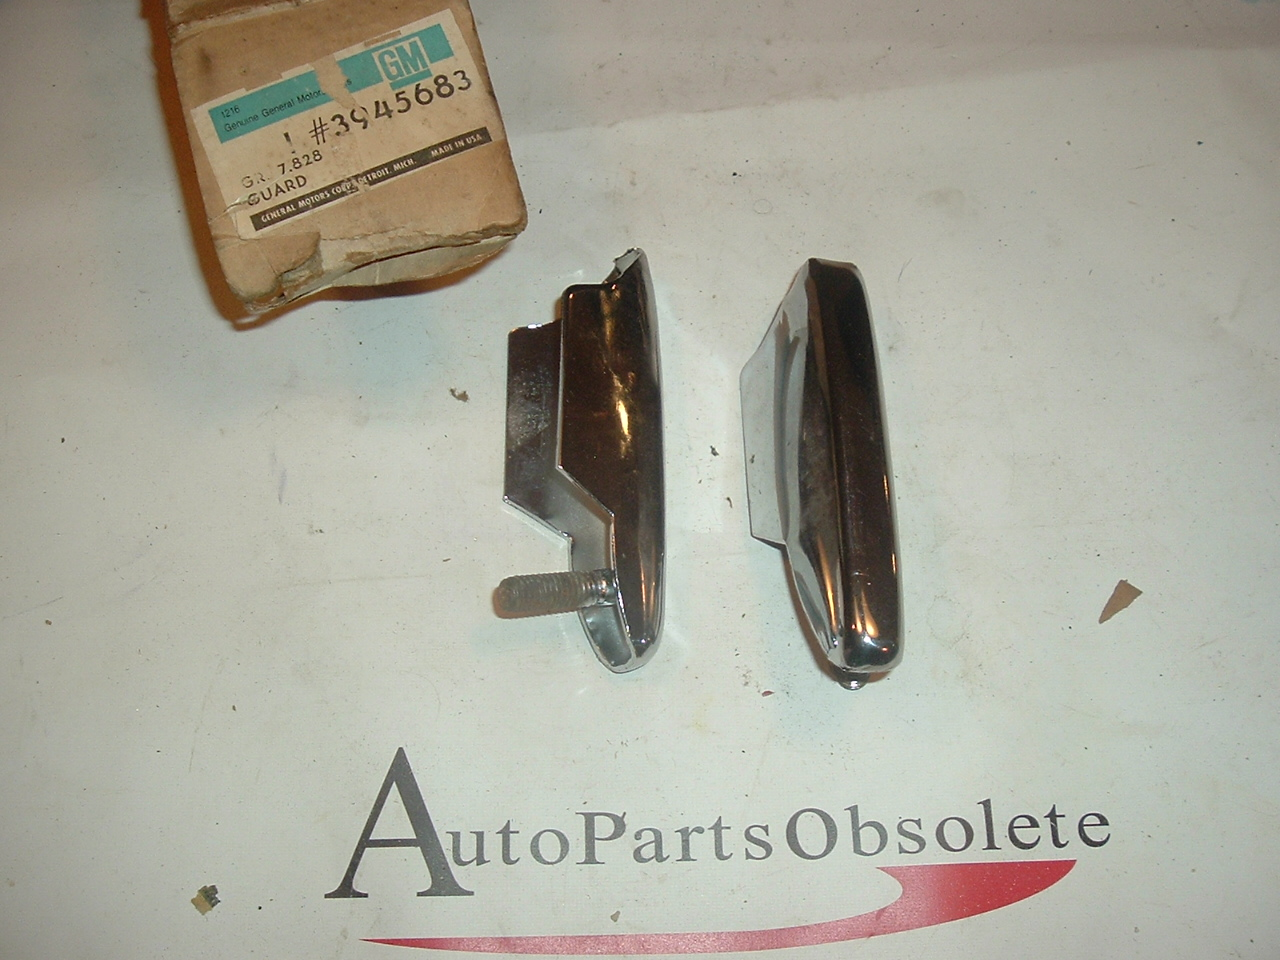 1969 Chevrolet standard front bumber guards pair